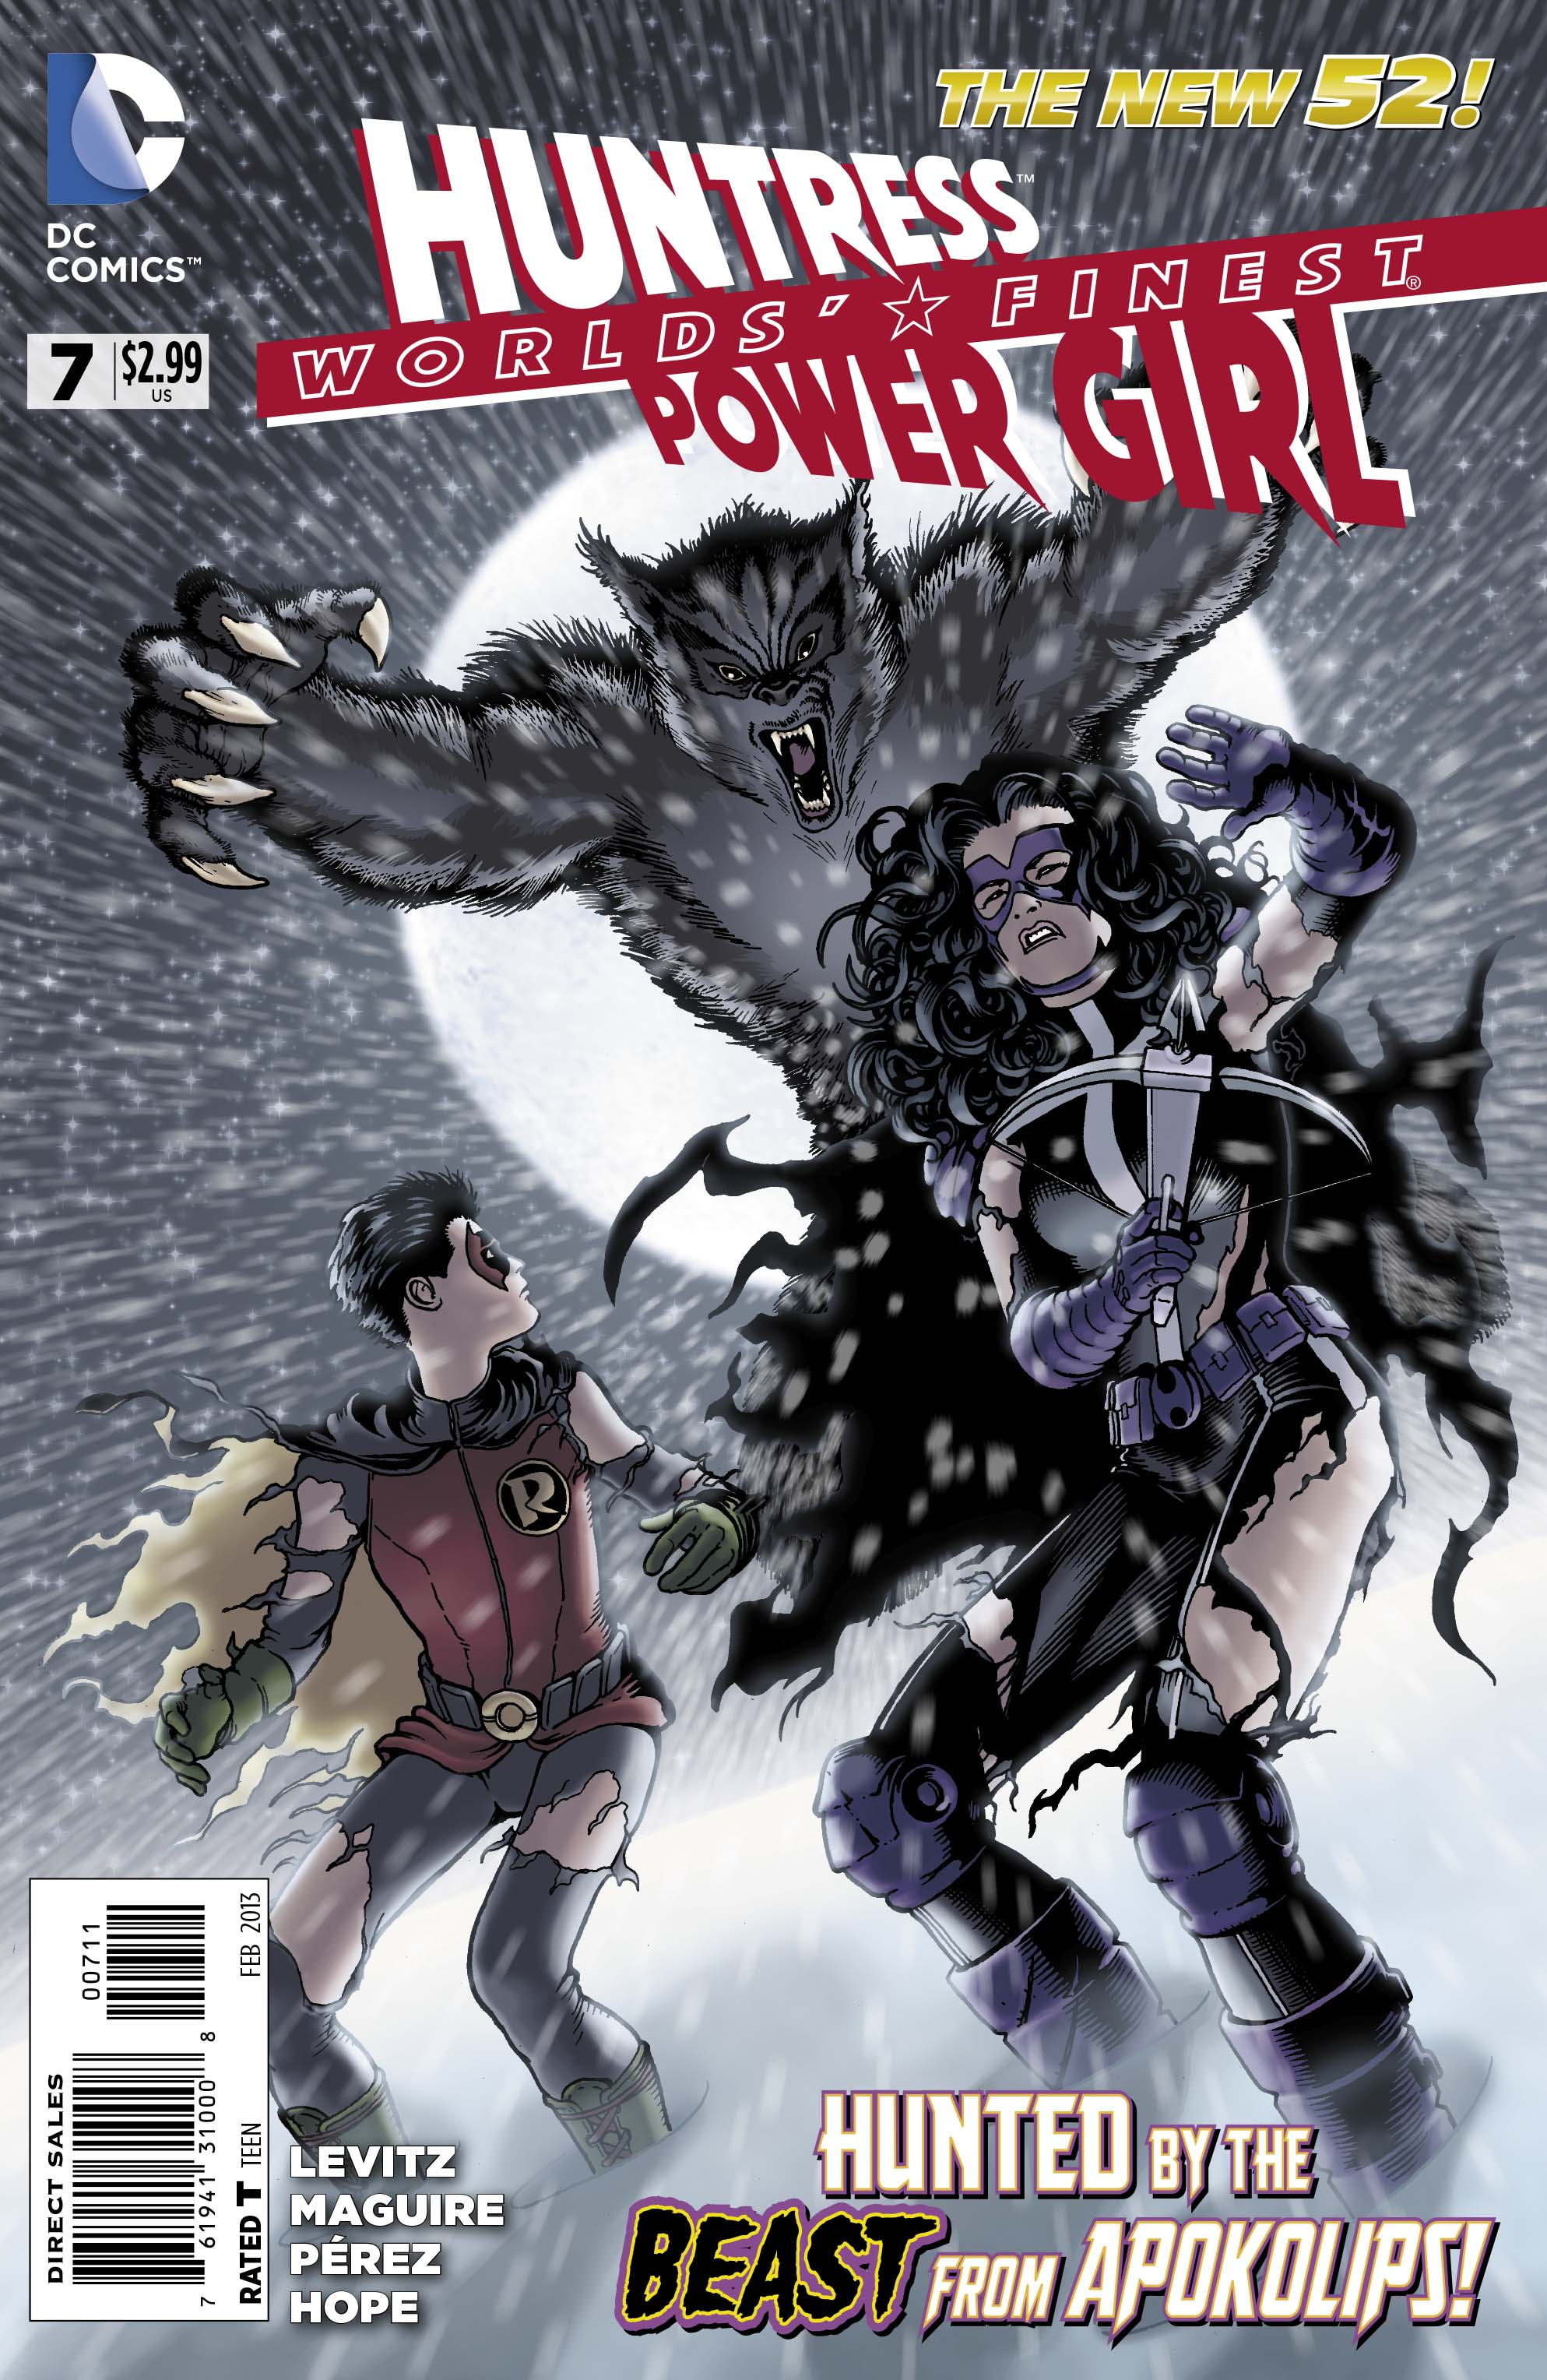 An Exclusive Preview of Worlds' Finest #7 Featuring Power Girl and